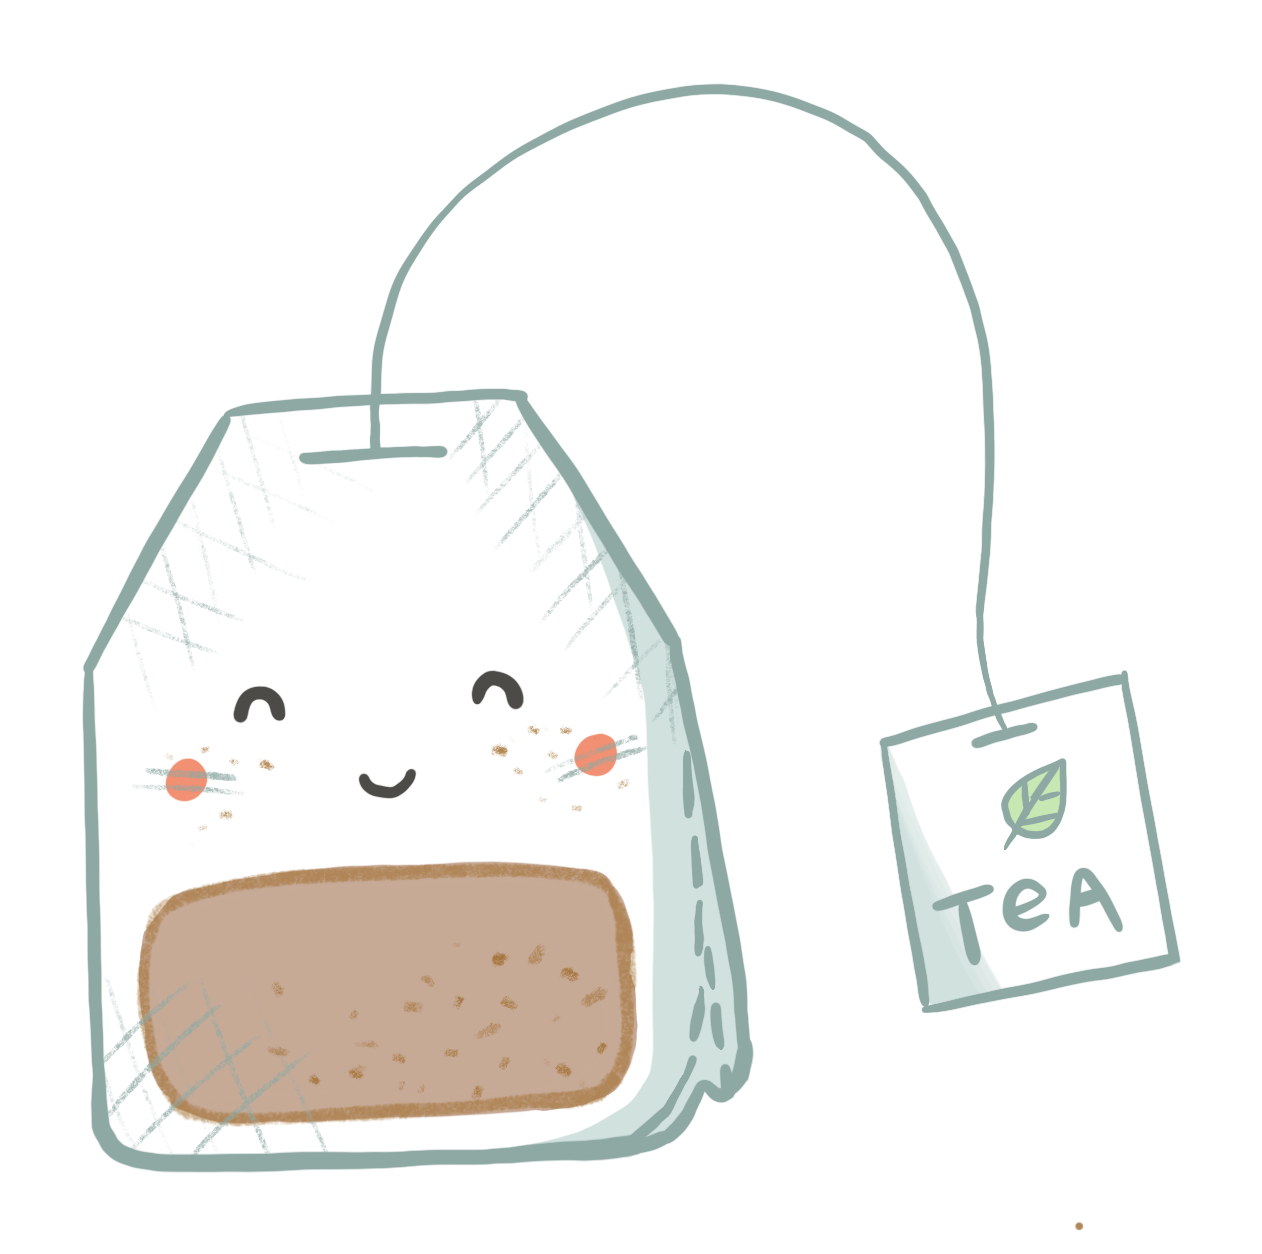 Teabag Bag Illustration Cute Laptop Stickers Abstract Iphone Wallpaper